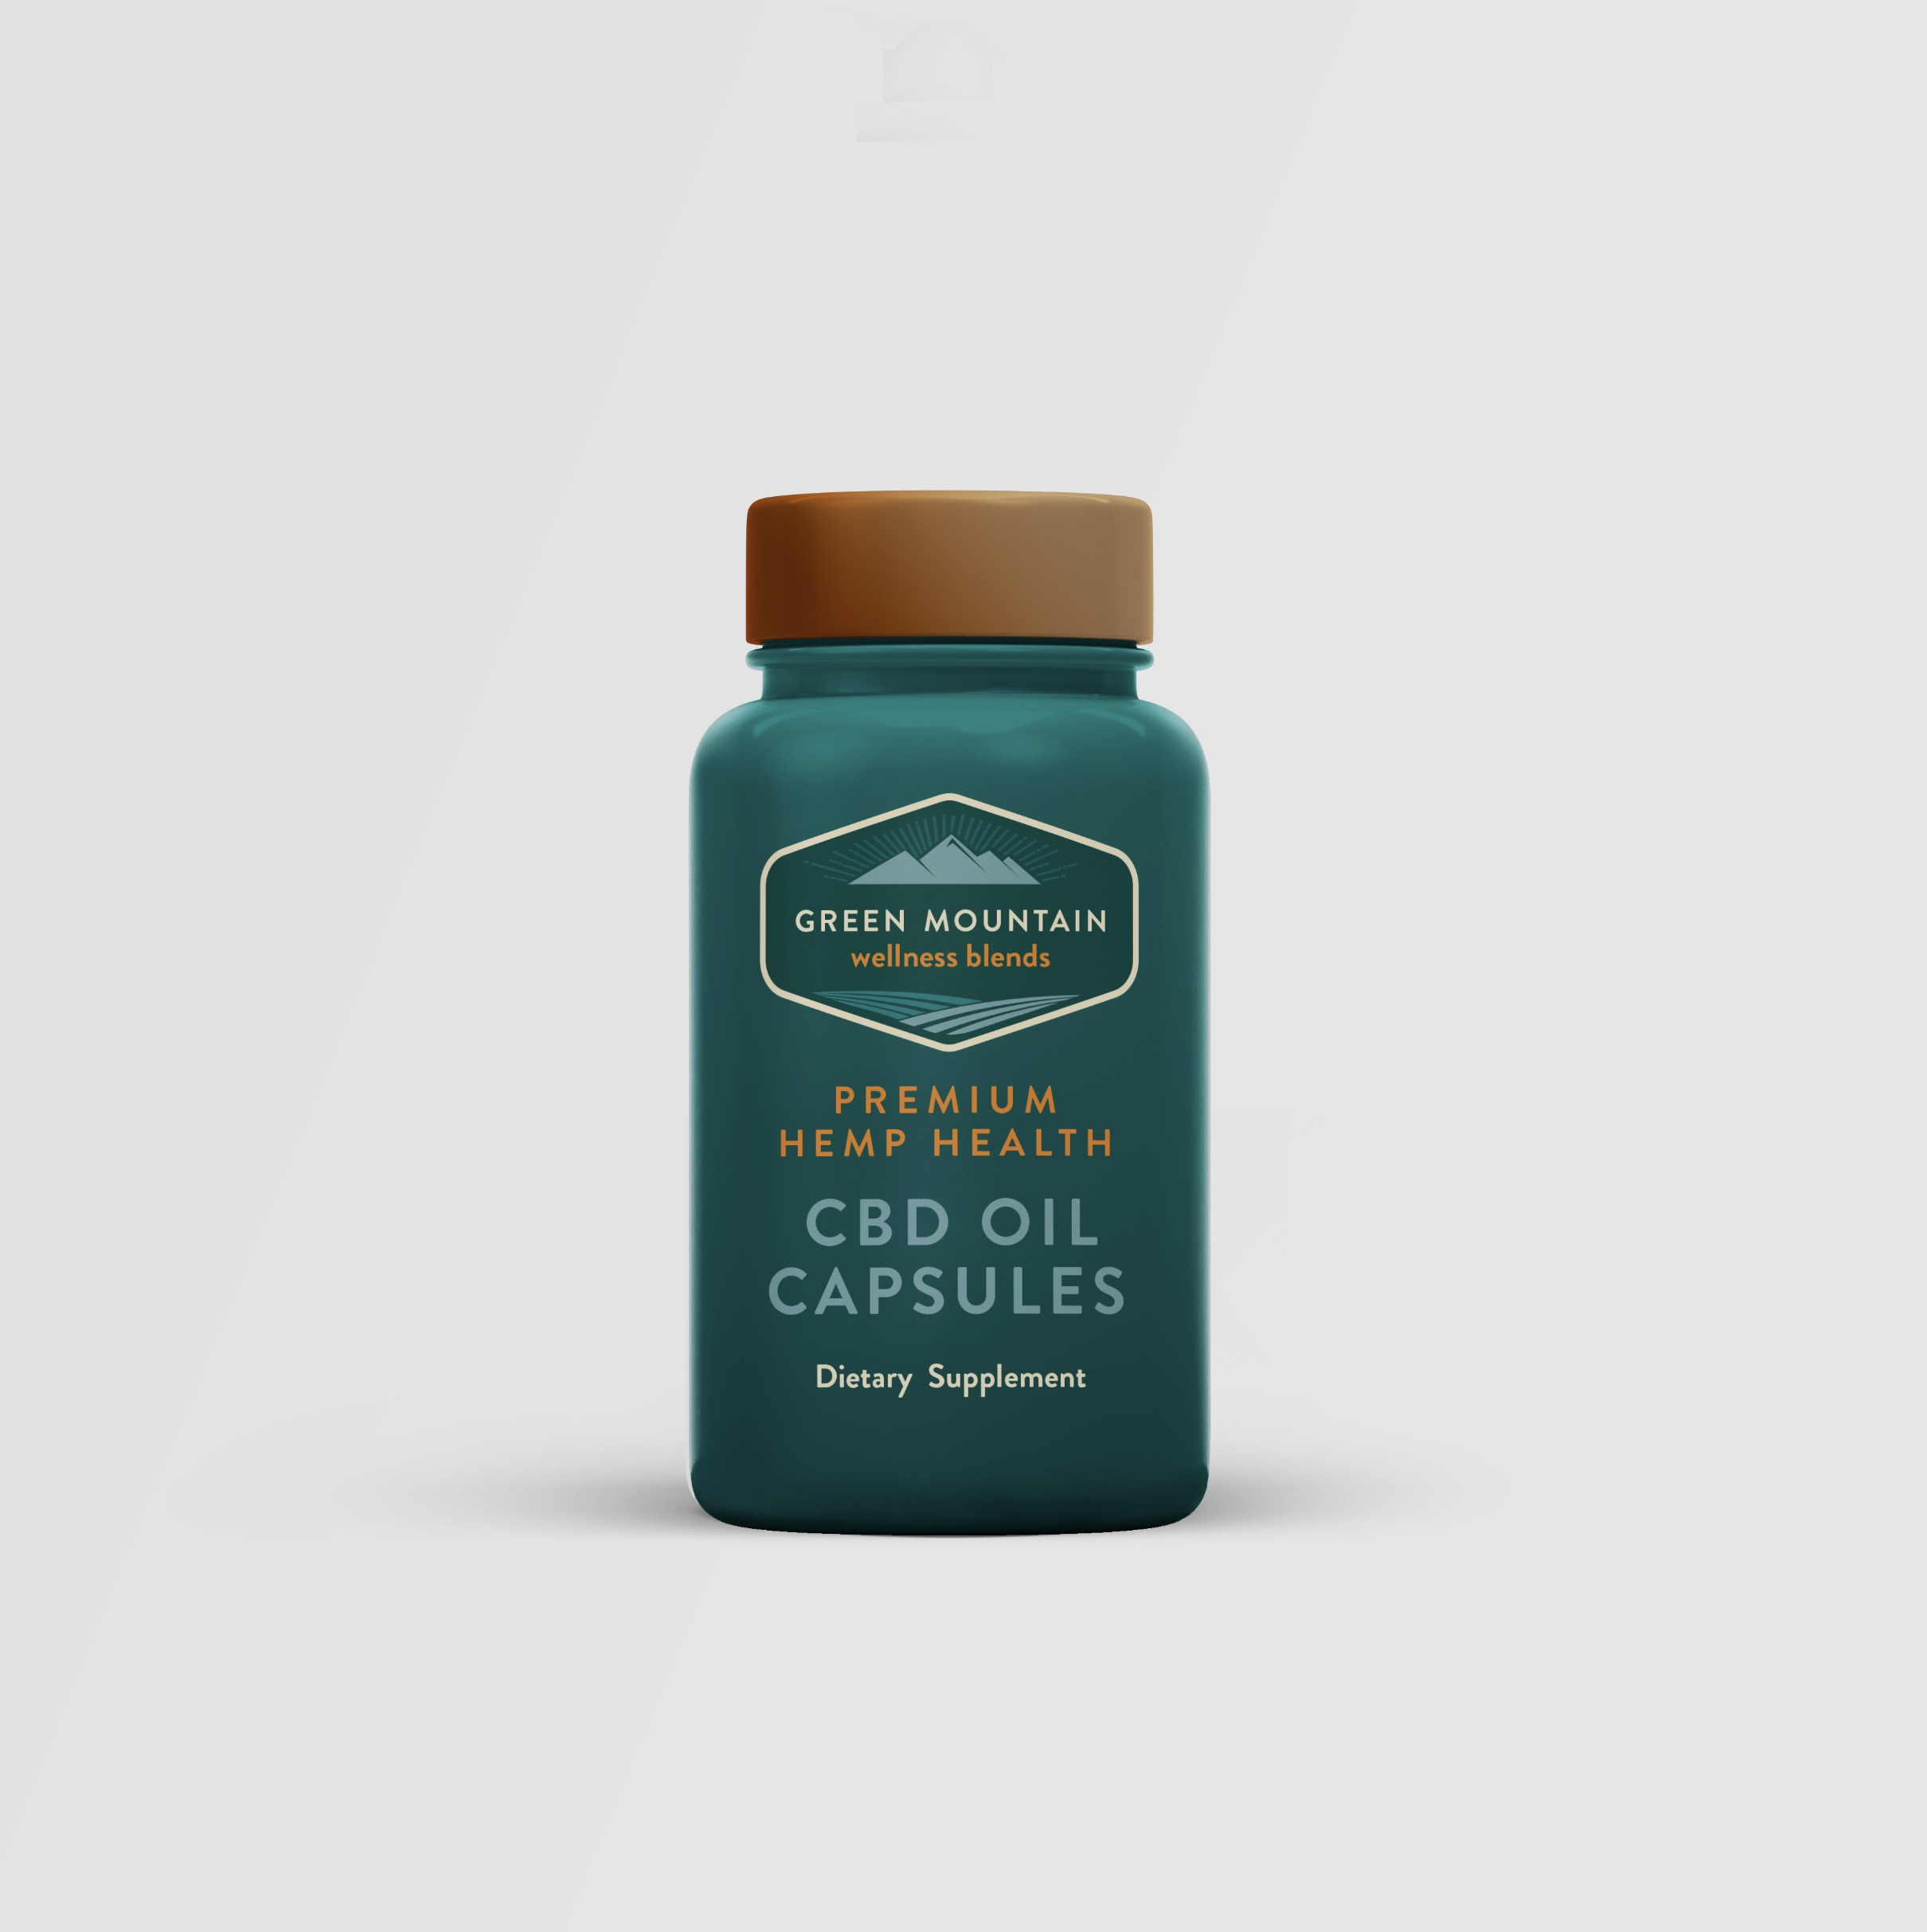 Child Resistant Package for CBD